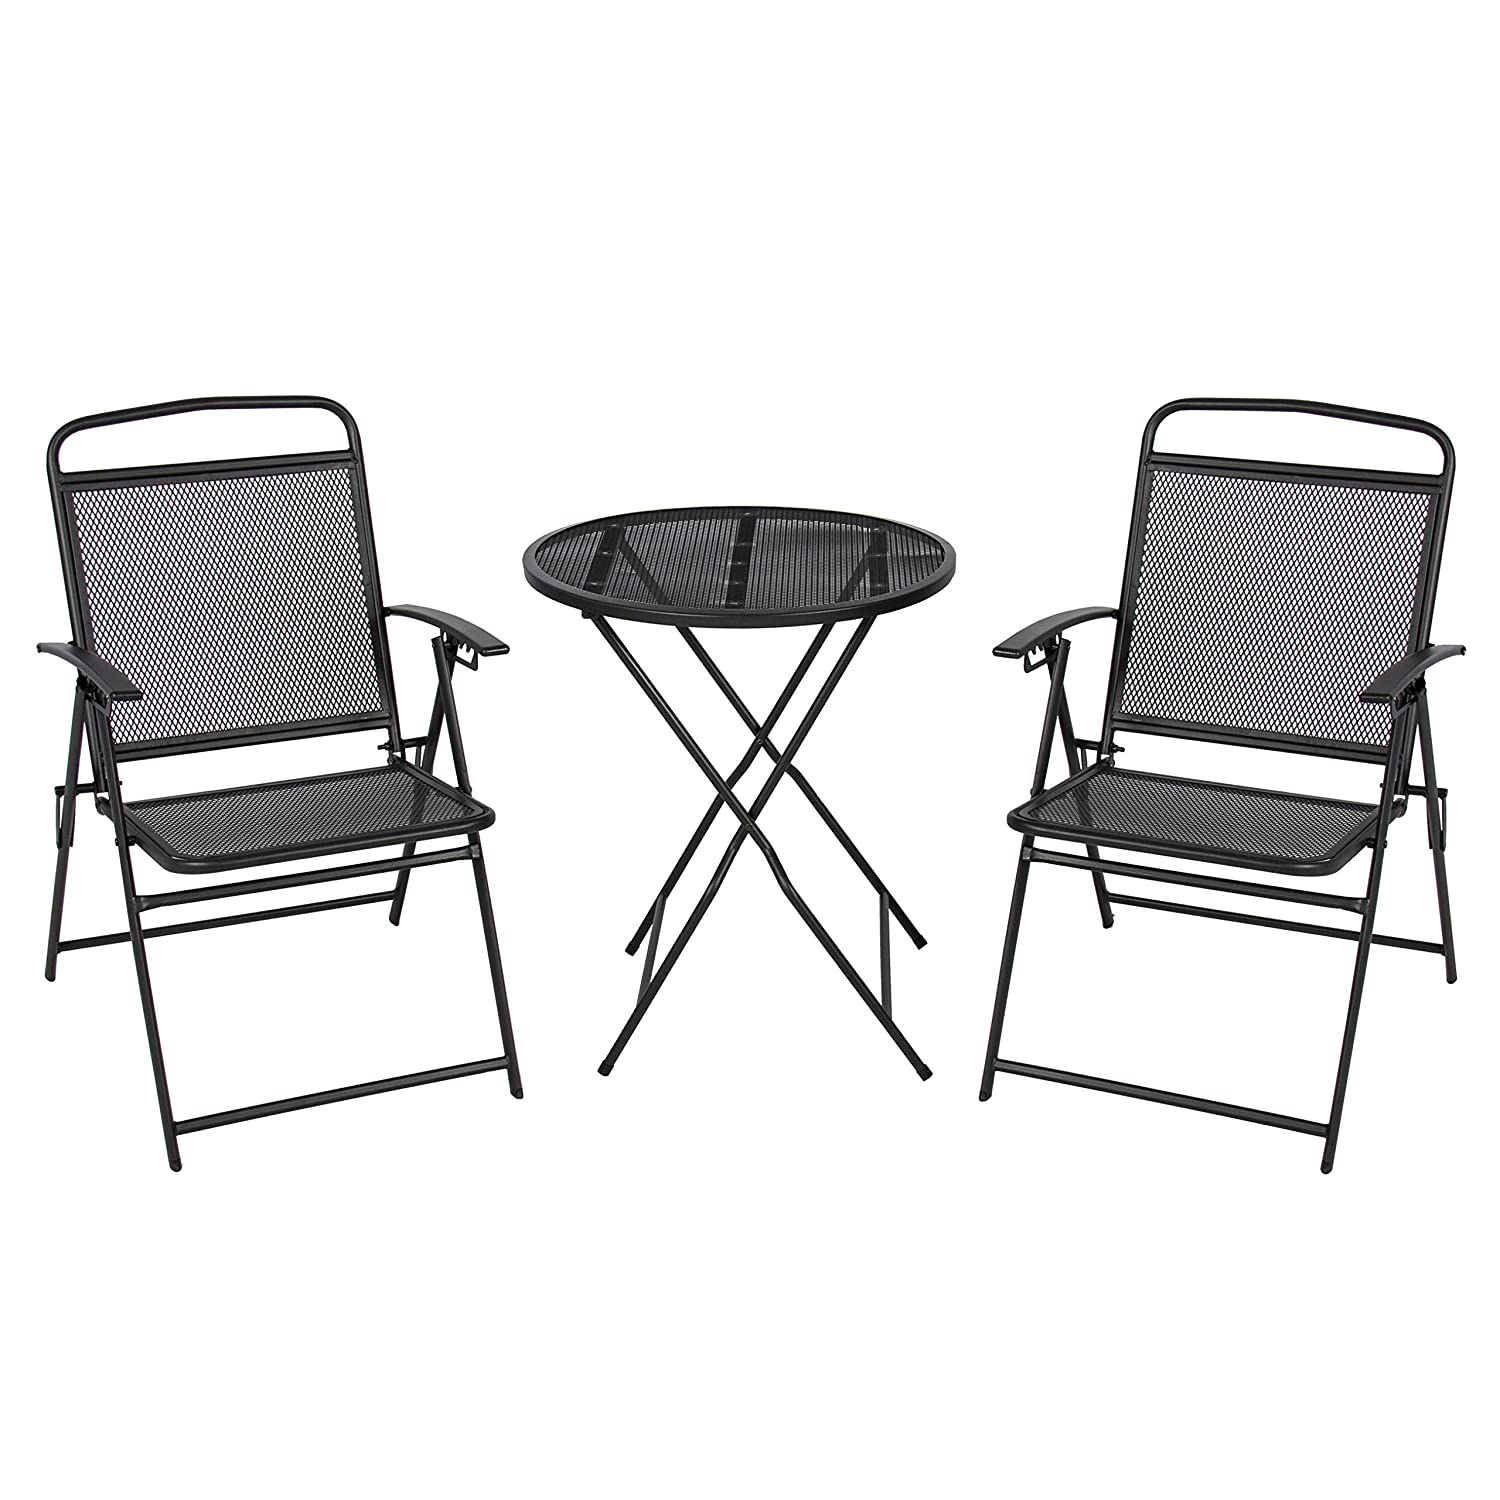 Amazon Best ChoiceProducts 3 Piece Patio Bistro Set Outdoor